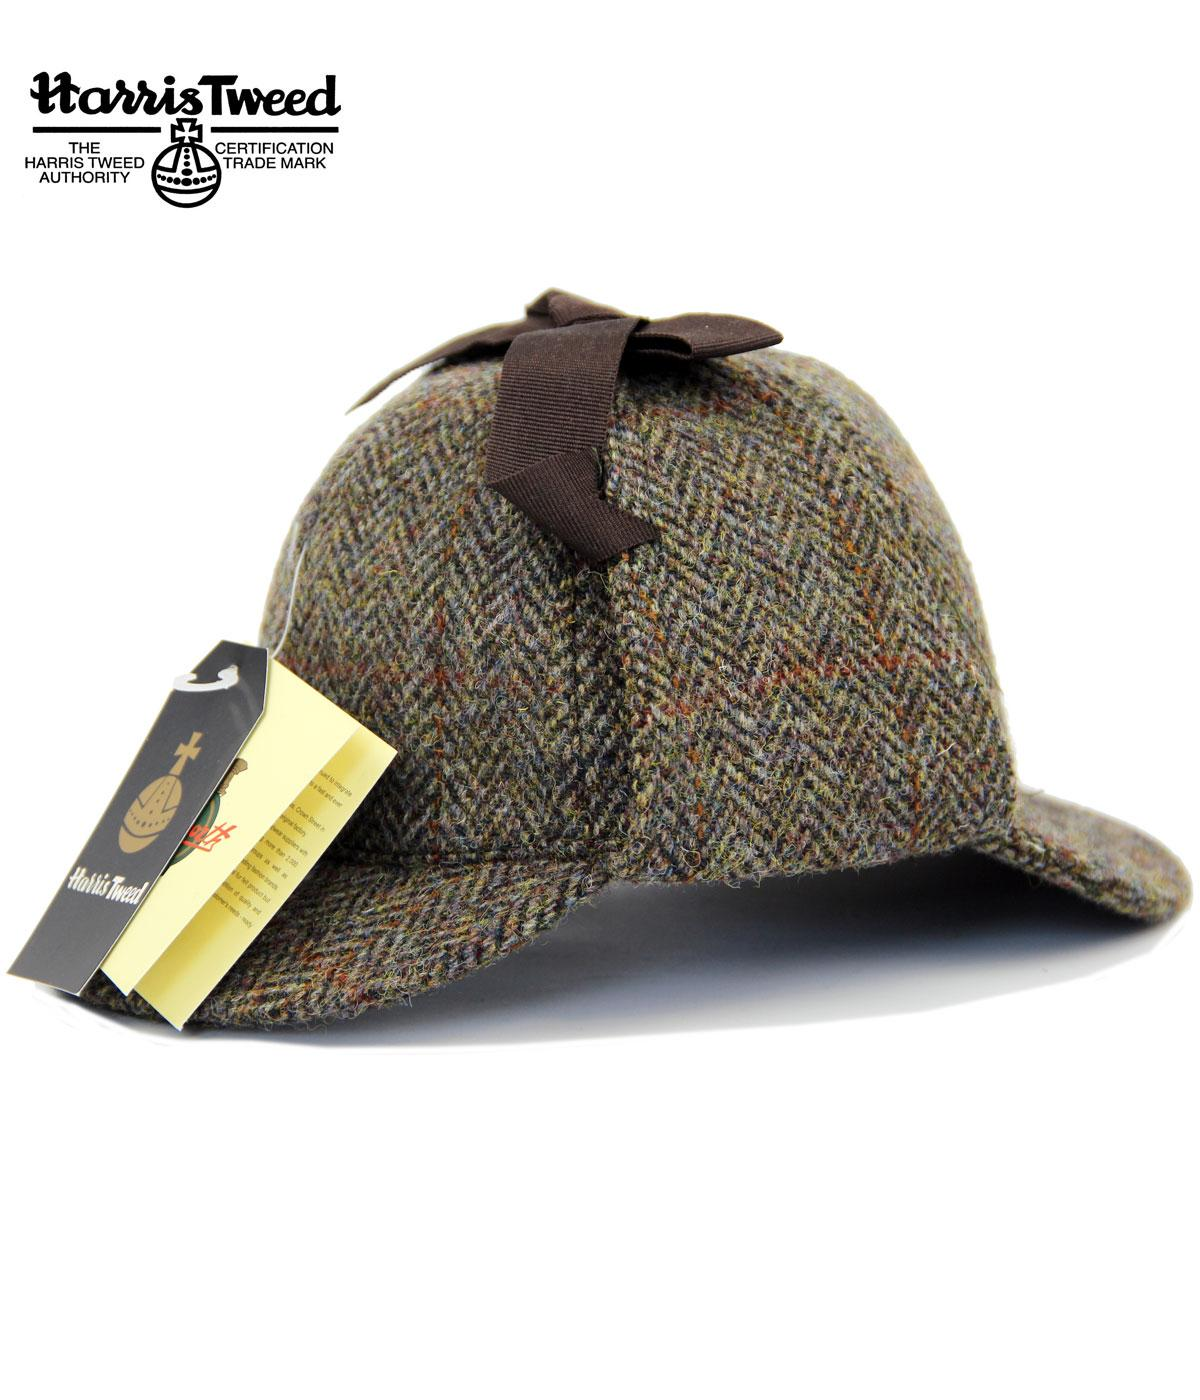 a47062dc283 FAILSWORTH Sherlock Retro Harris Tweed Deestakler Hat